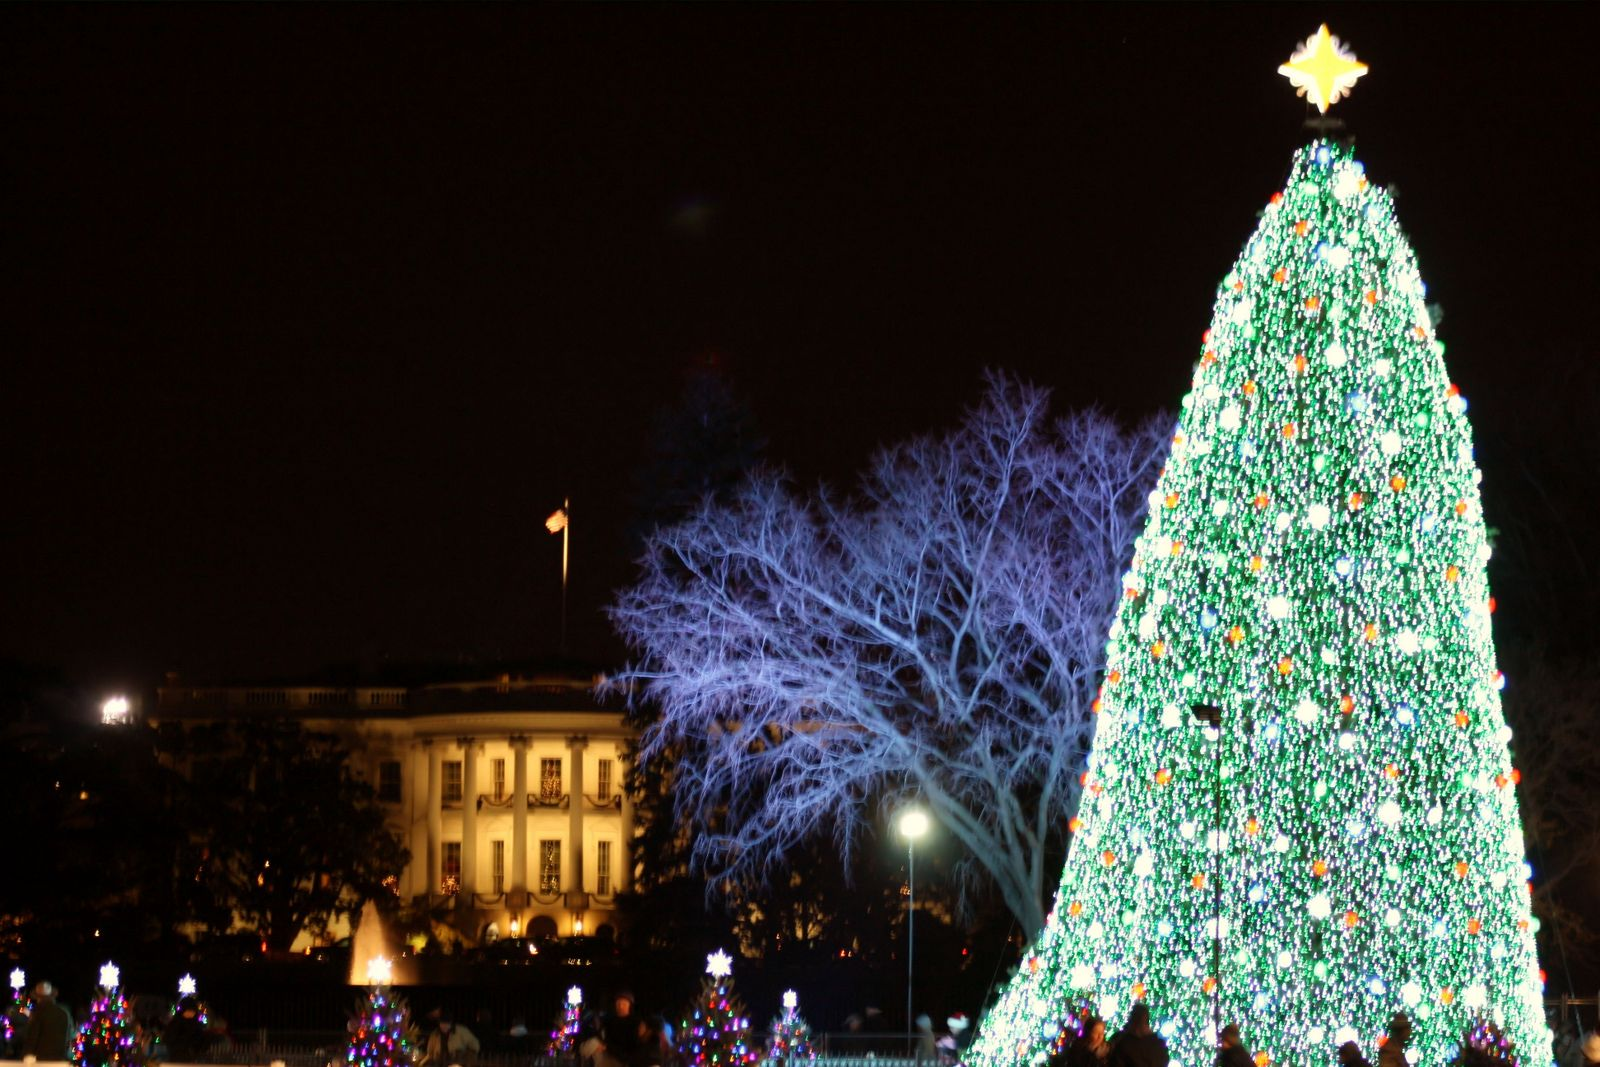 The 2010 National Christmas Tree lights up the Ellipse Z2aKgZow